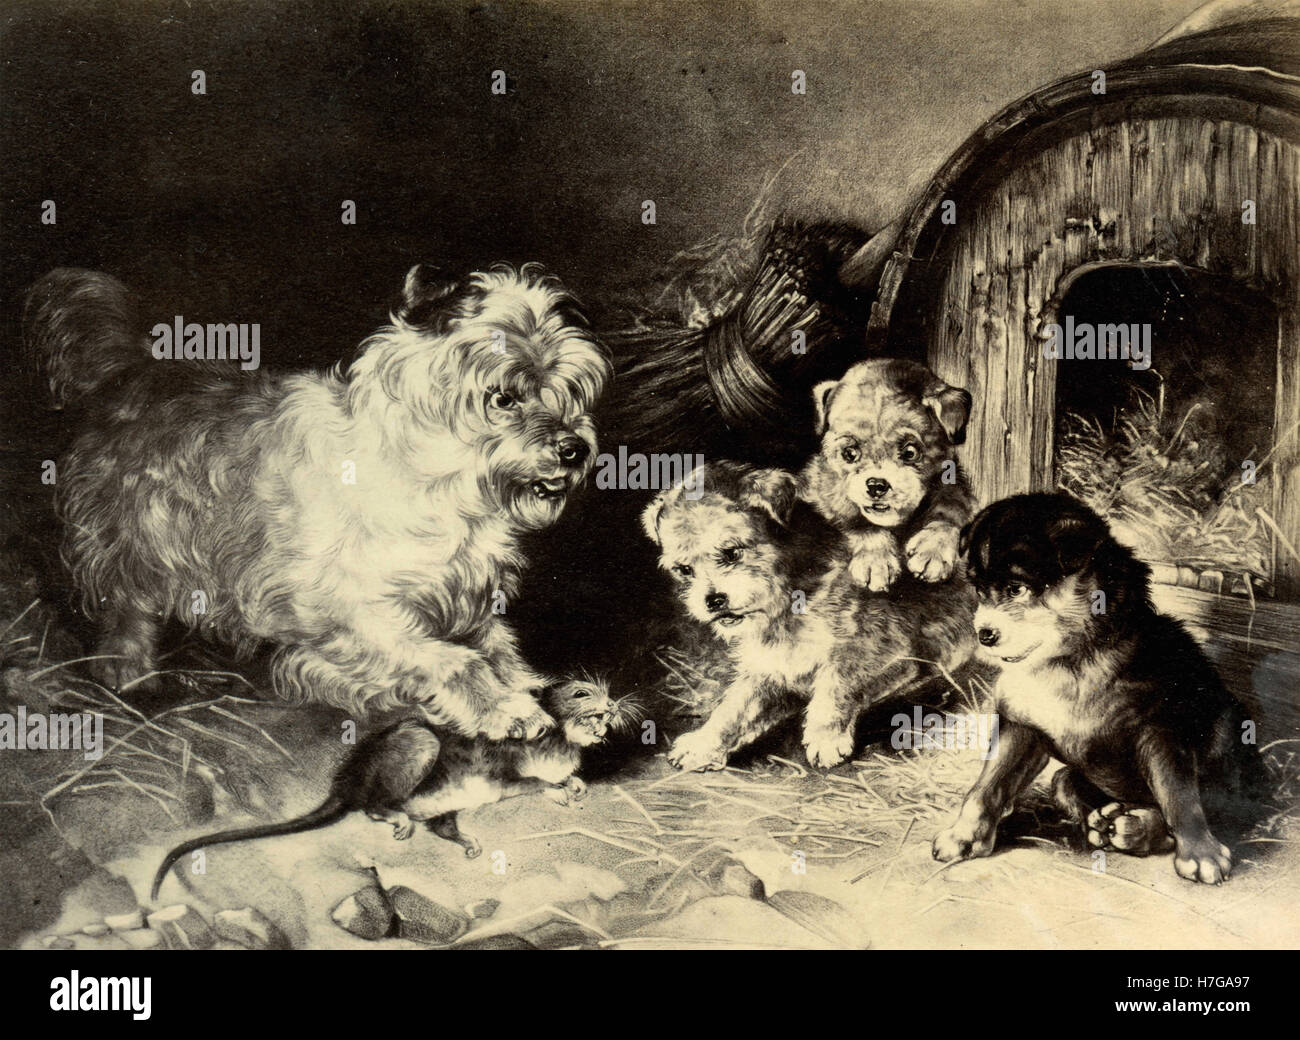 Mommy Dog Shows The Puppies To Catch A Mouse Painting Stock Photo